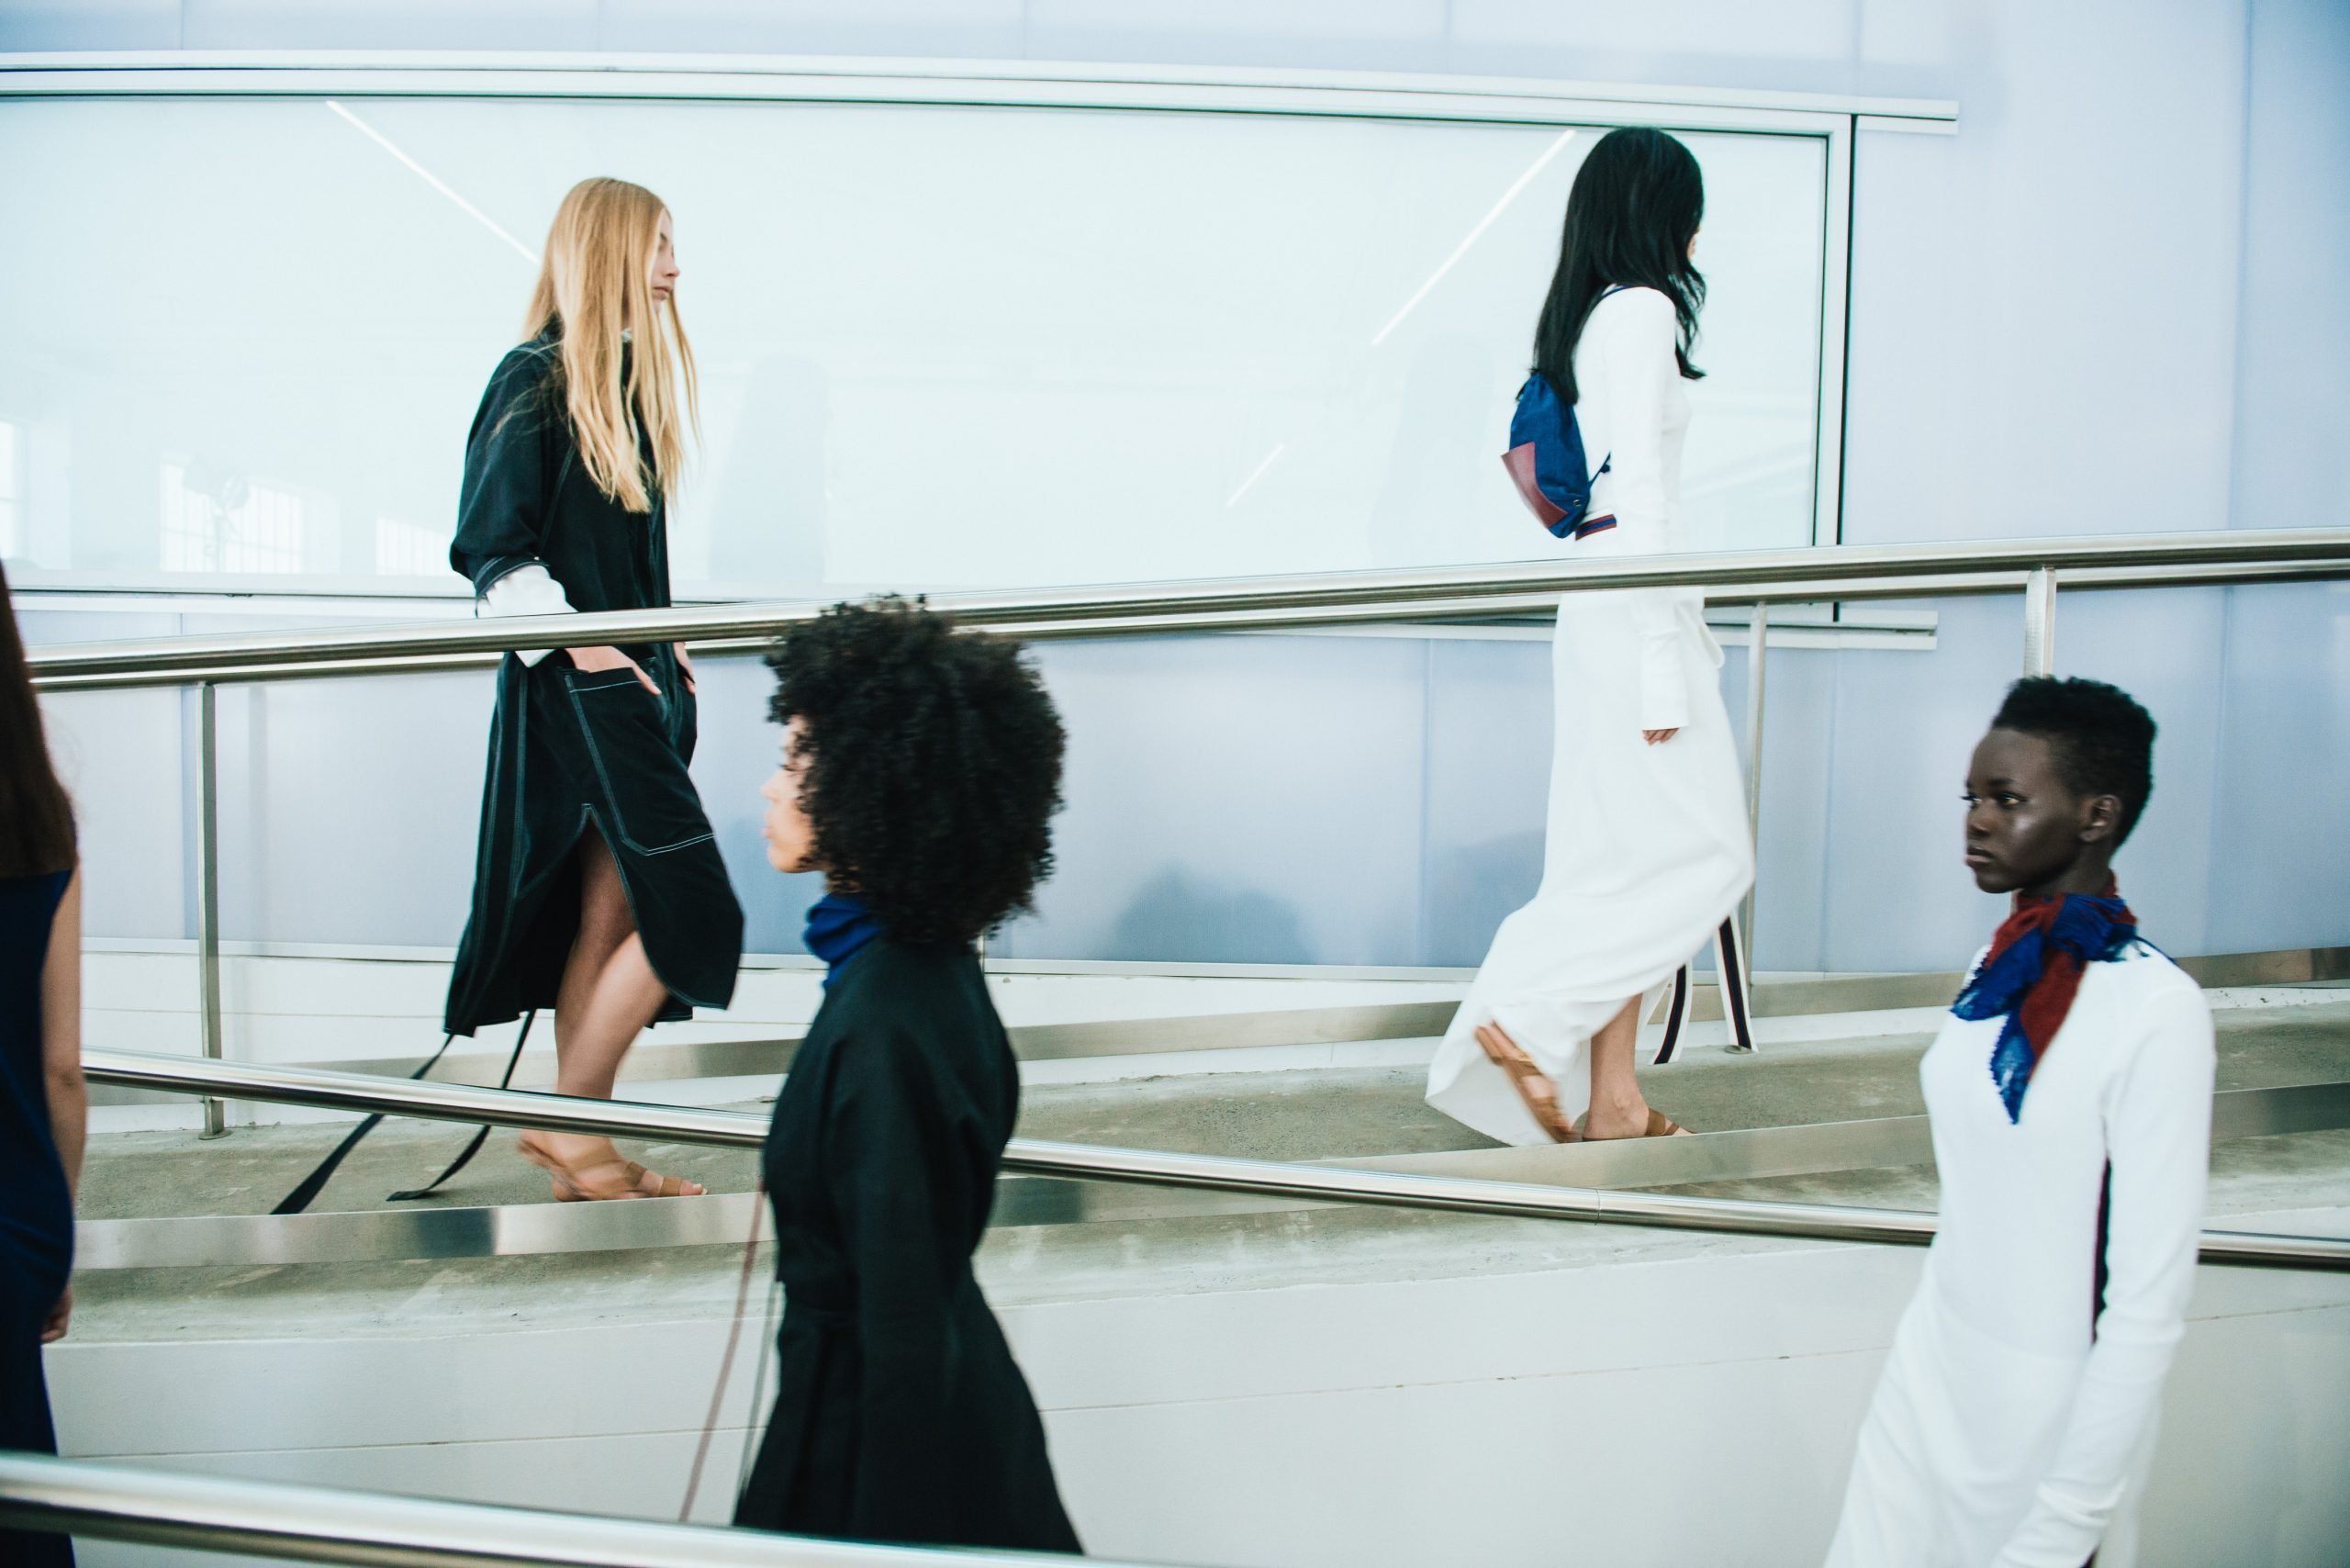 Image of models walking the runway during a fashion show.